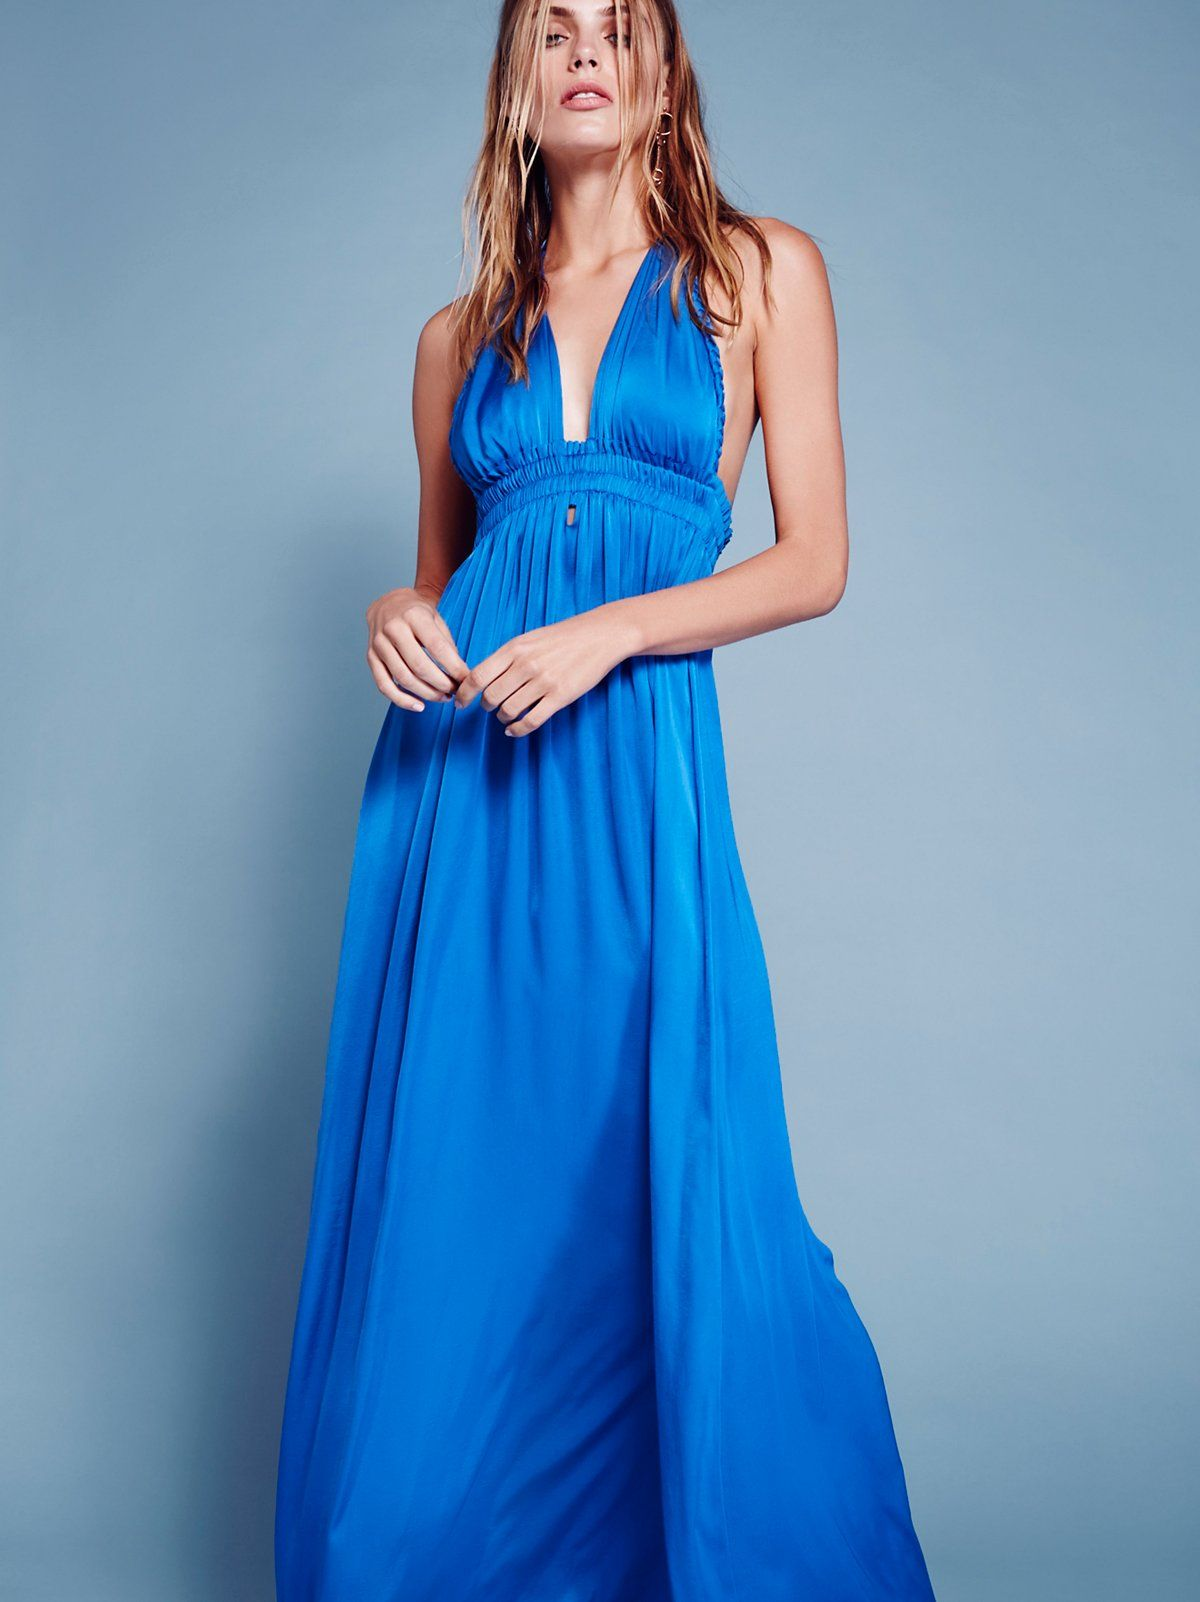 Dresses - Boho, Cute and Casual Dresses for Women | Free People ...